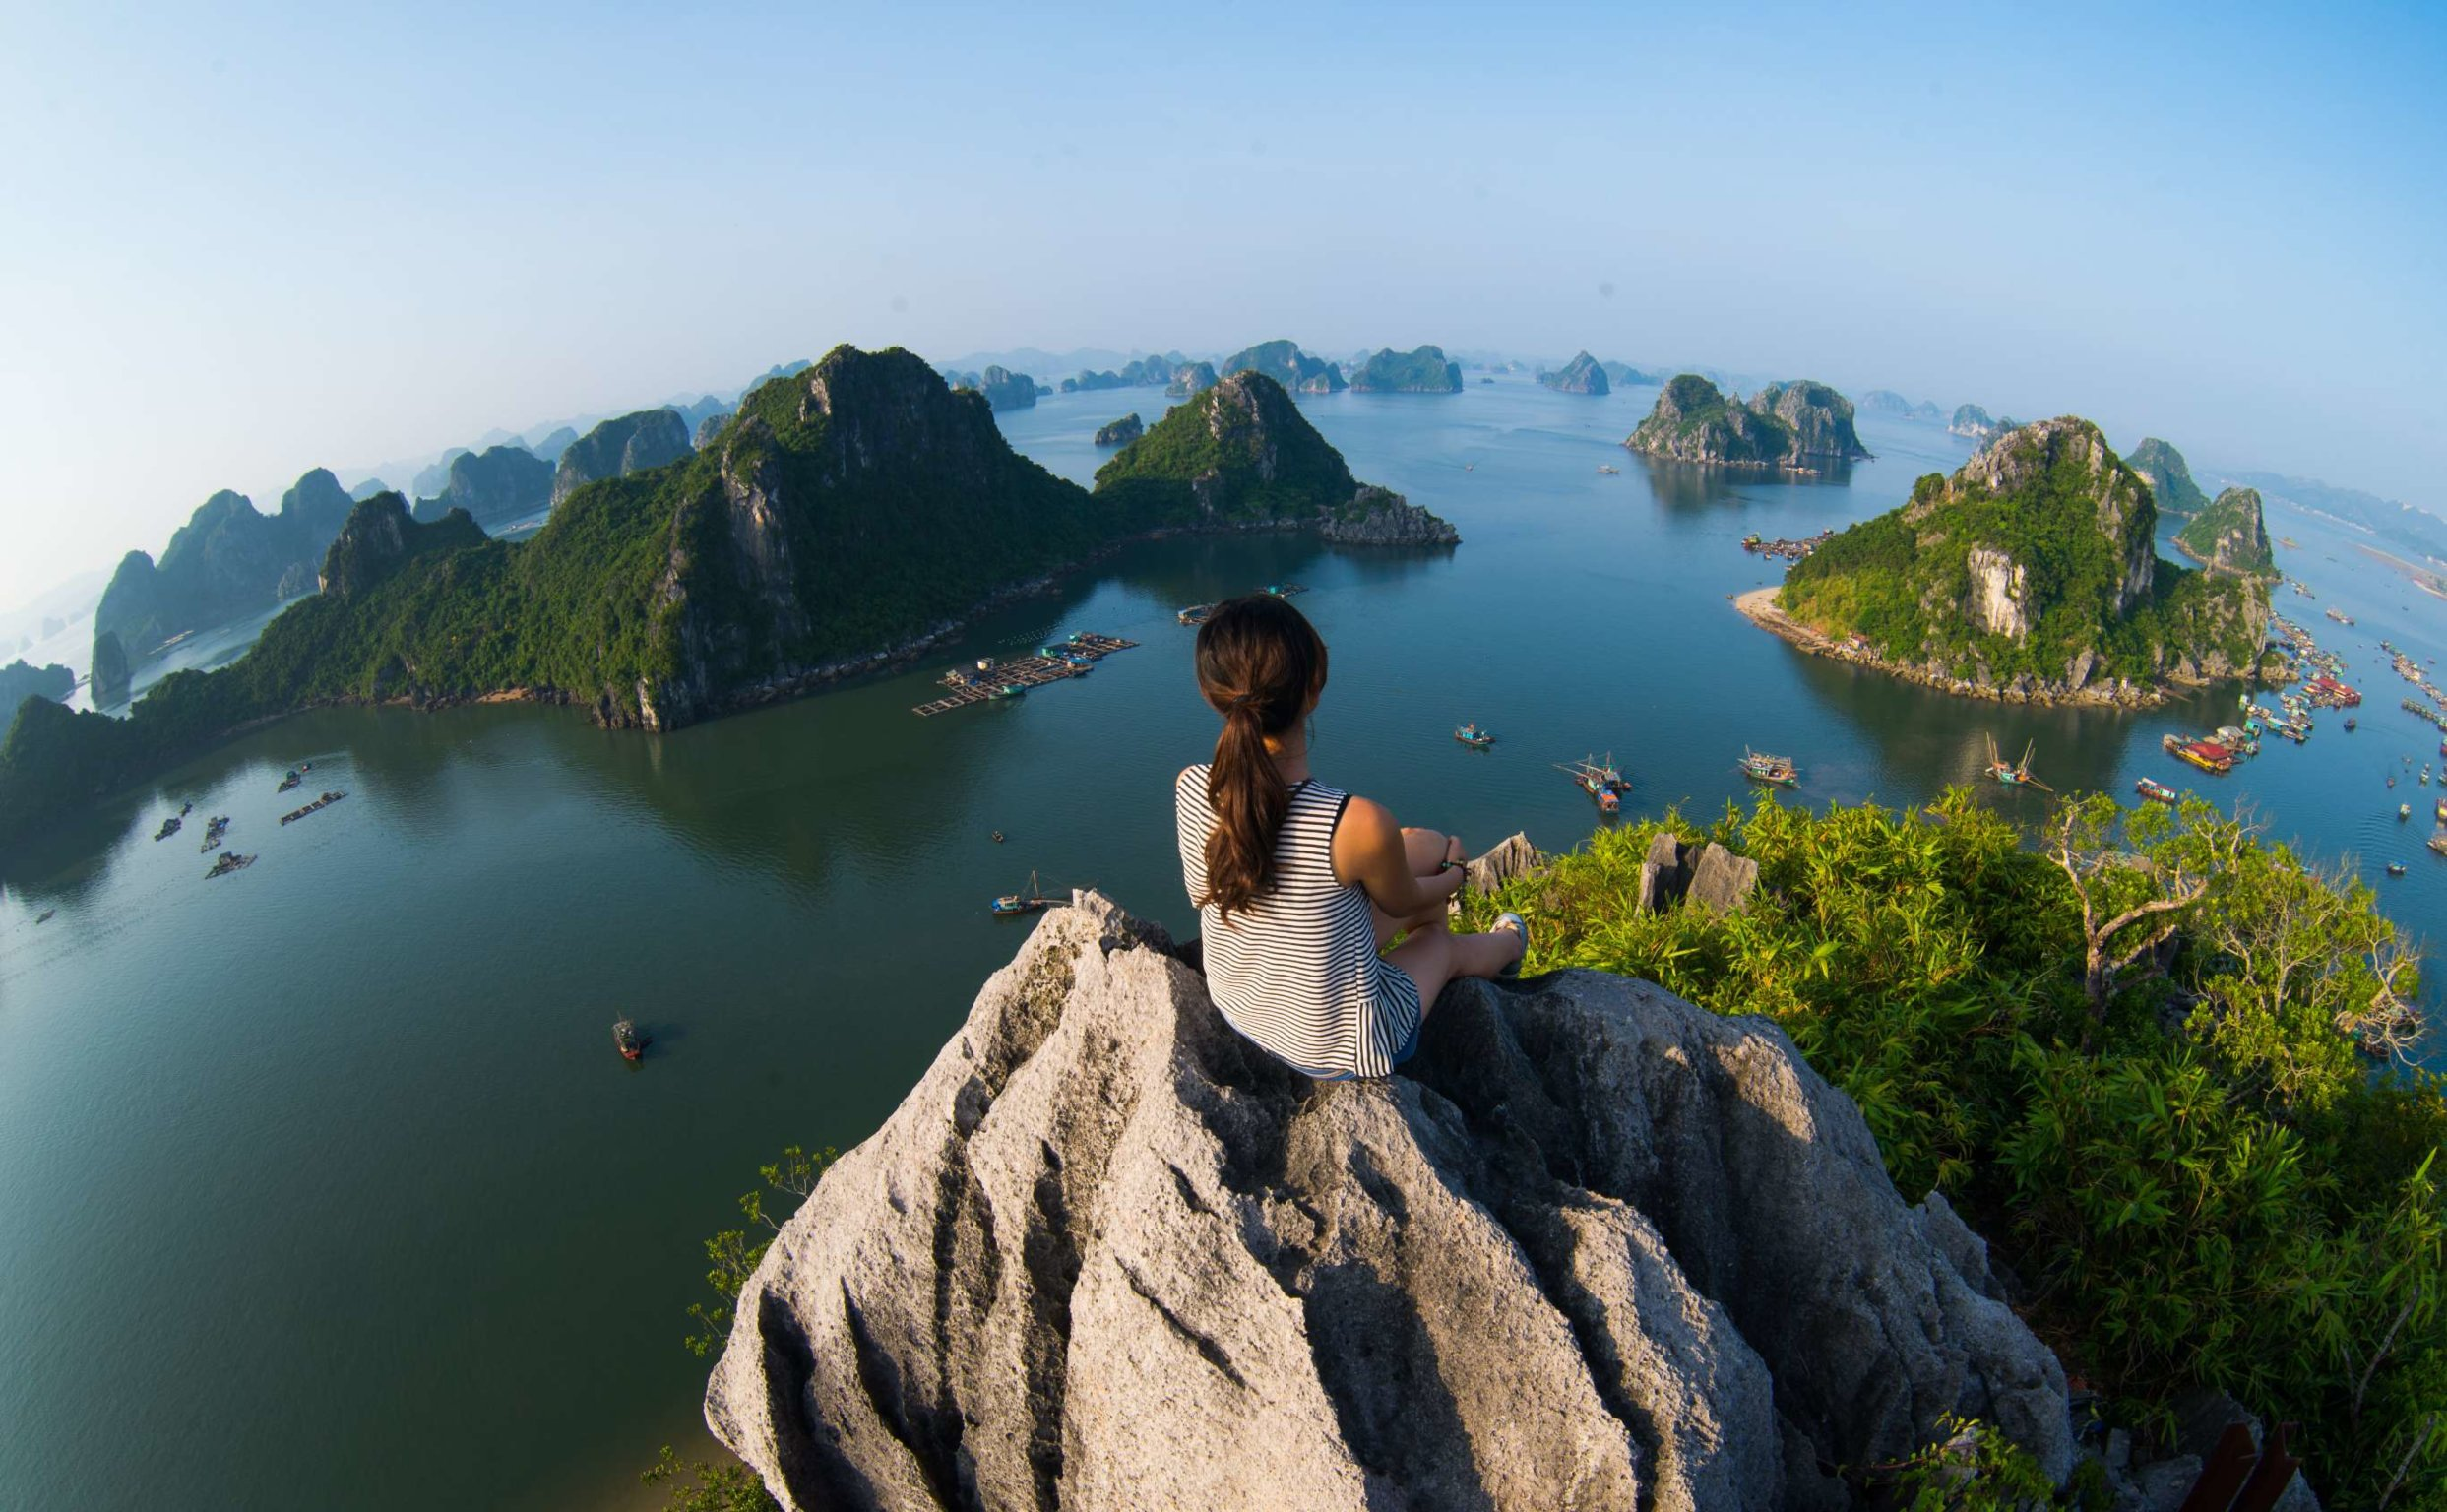 12-Day See All & Eat Well in Vietnam - Vietnam Itinerary